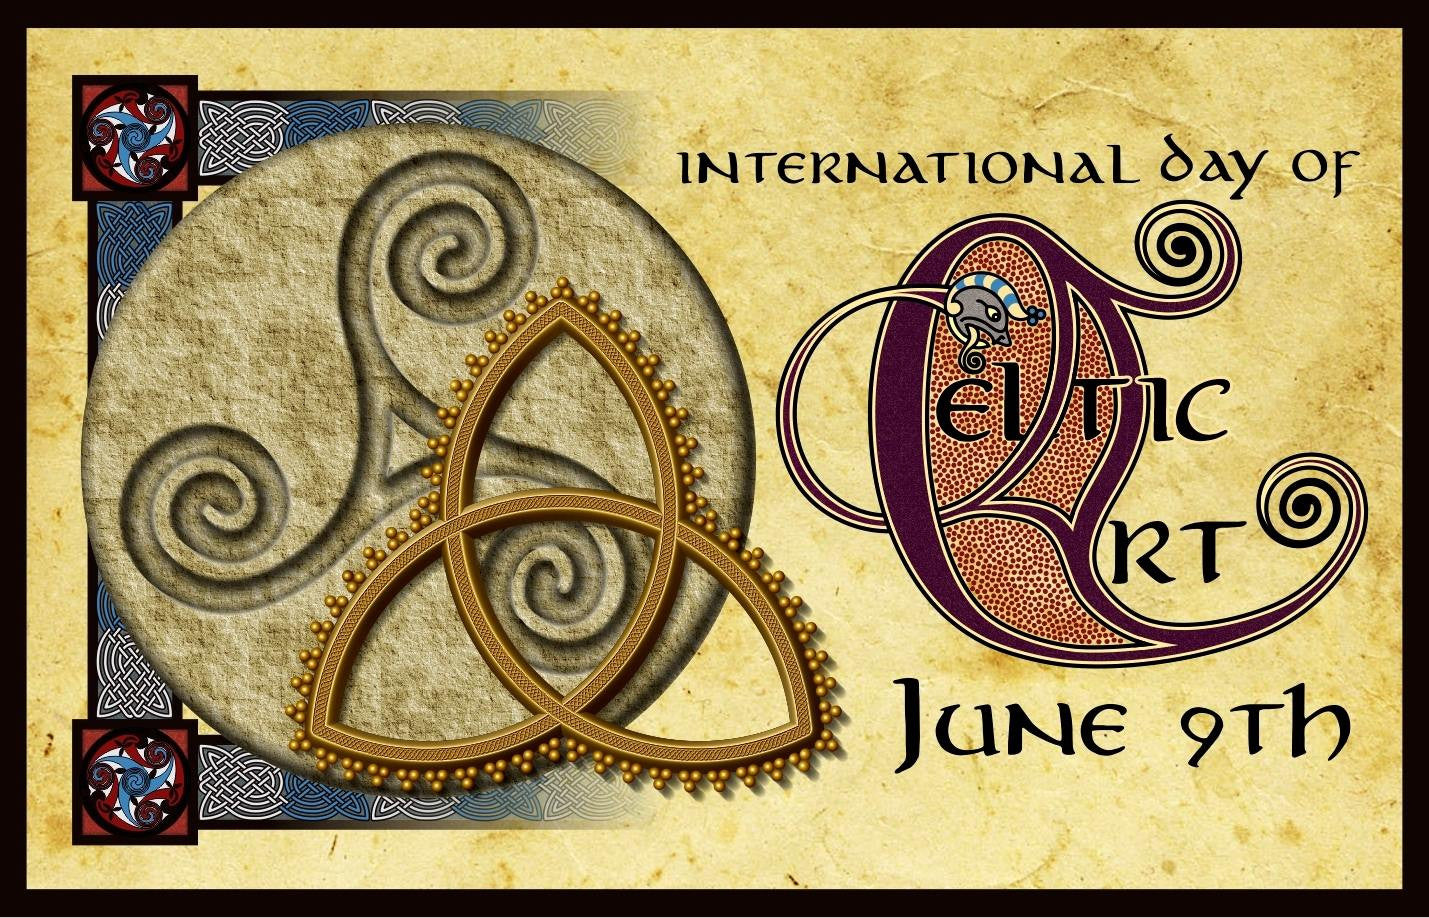 International Day of Celtic Art